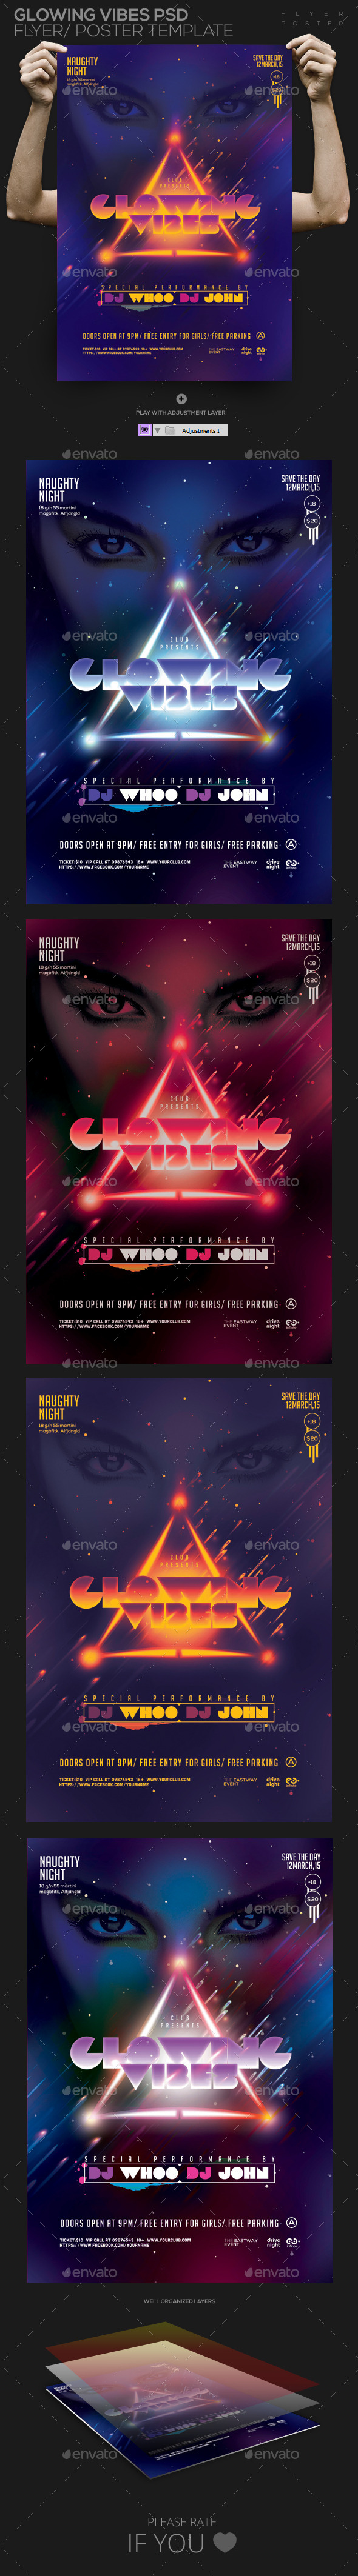 GraphicRiver Glowing Vibes PSD Flyer Poster Template 11226560